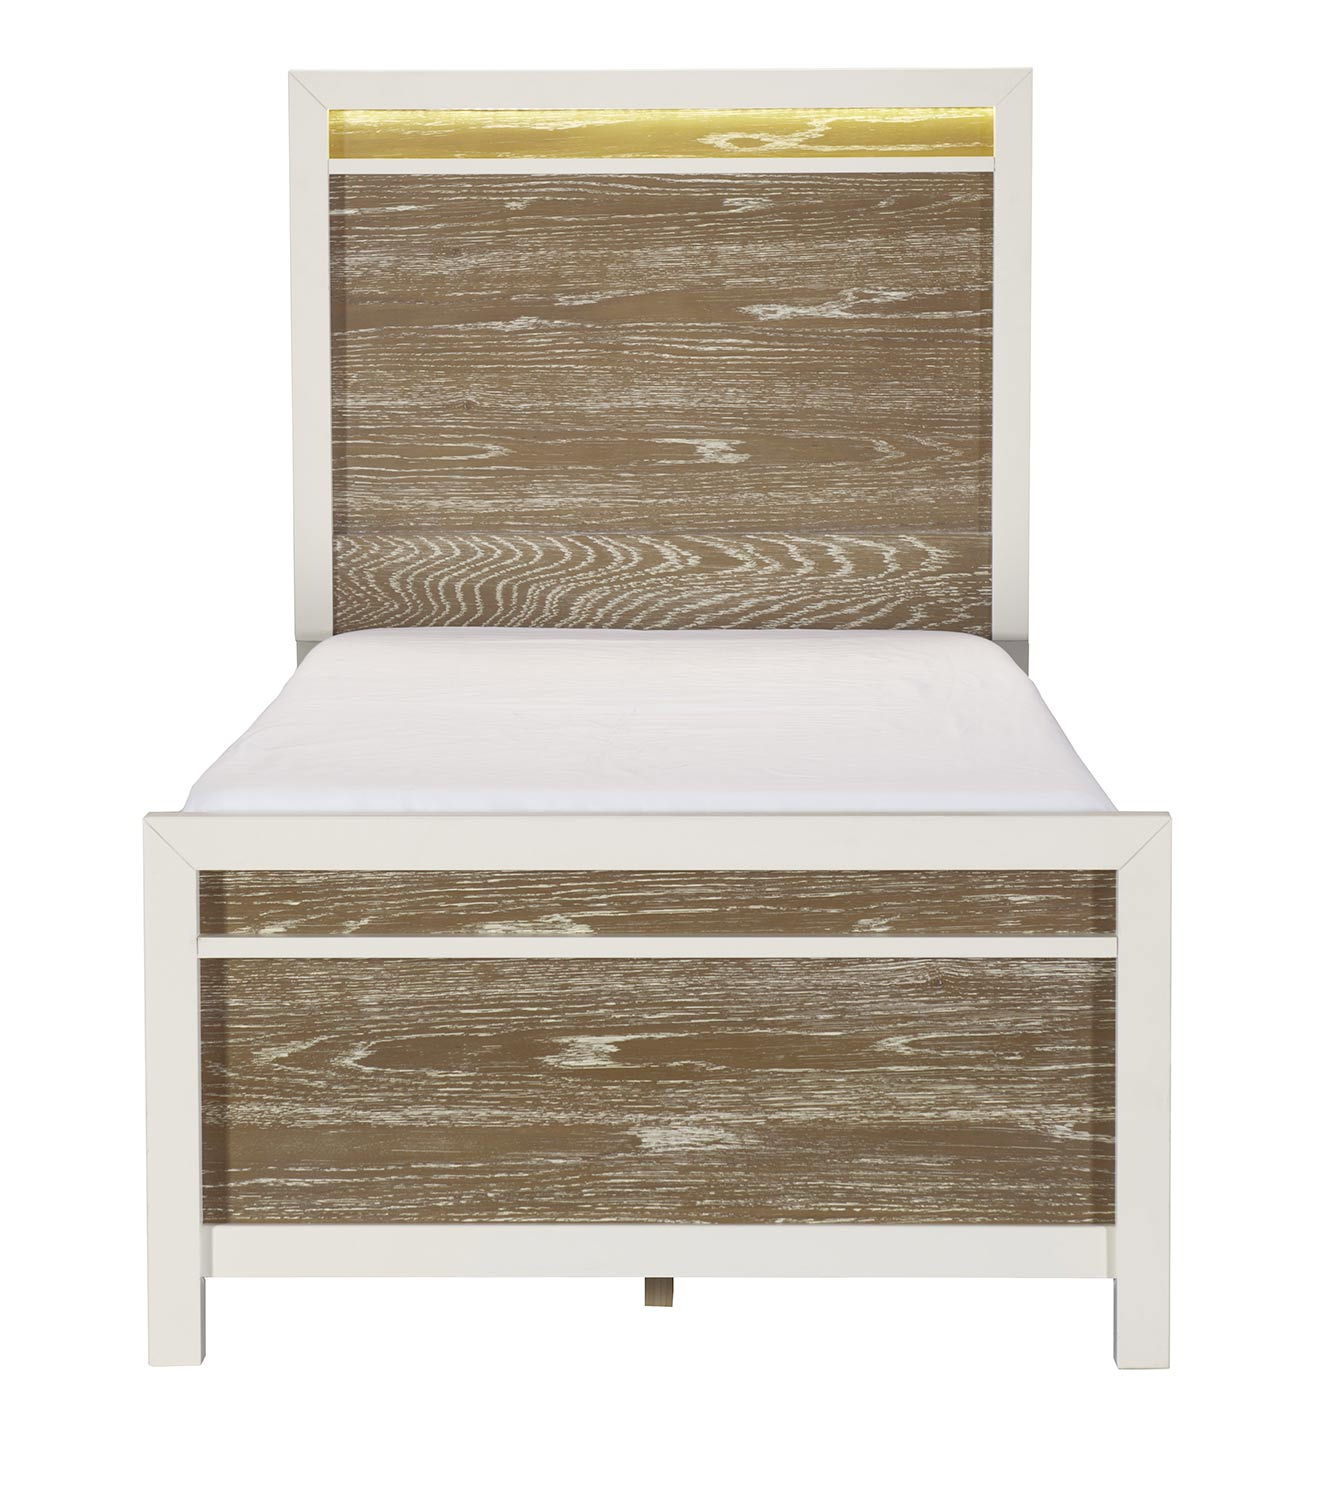 Homelegance Renly Bed with LED Lighting - Natural Finish of Oak Veneer with White Framing